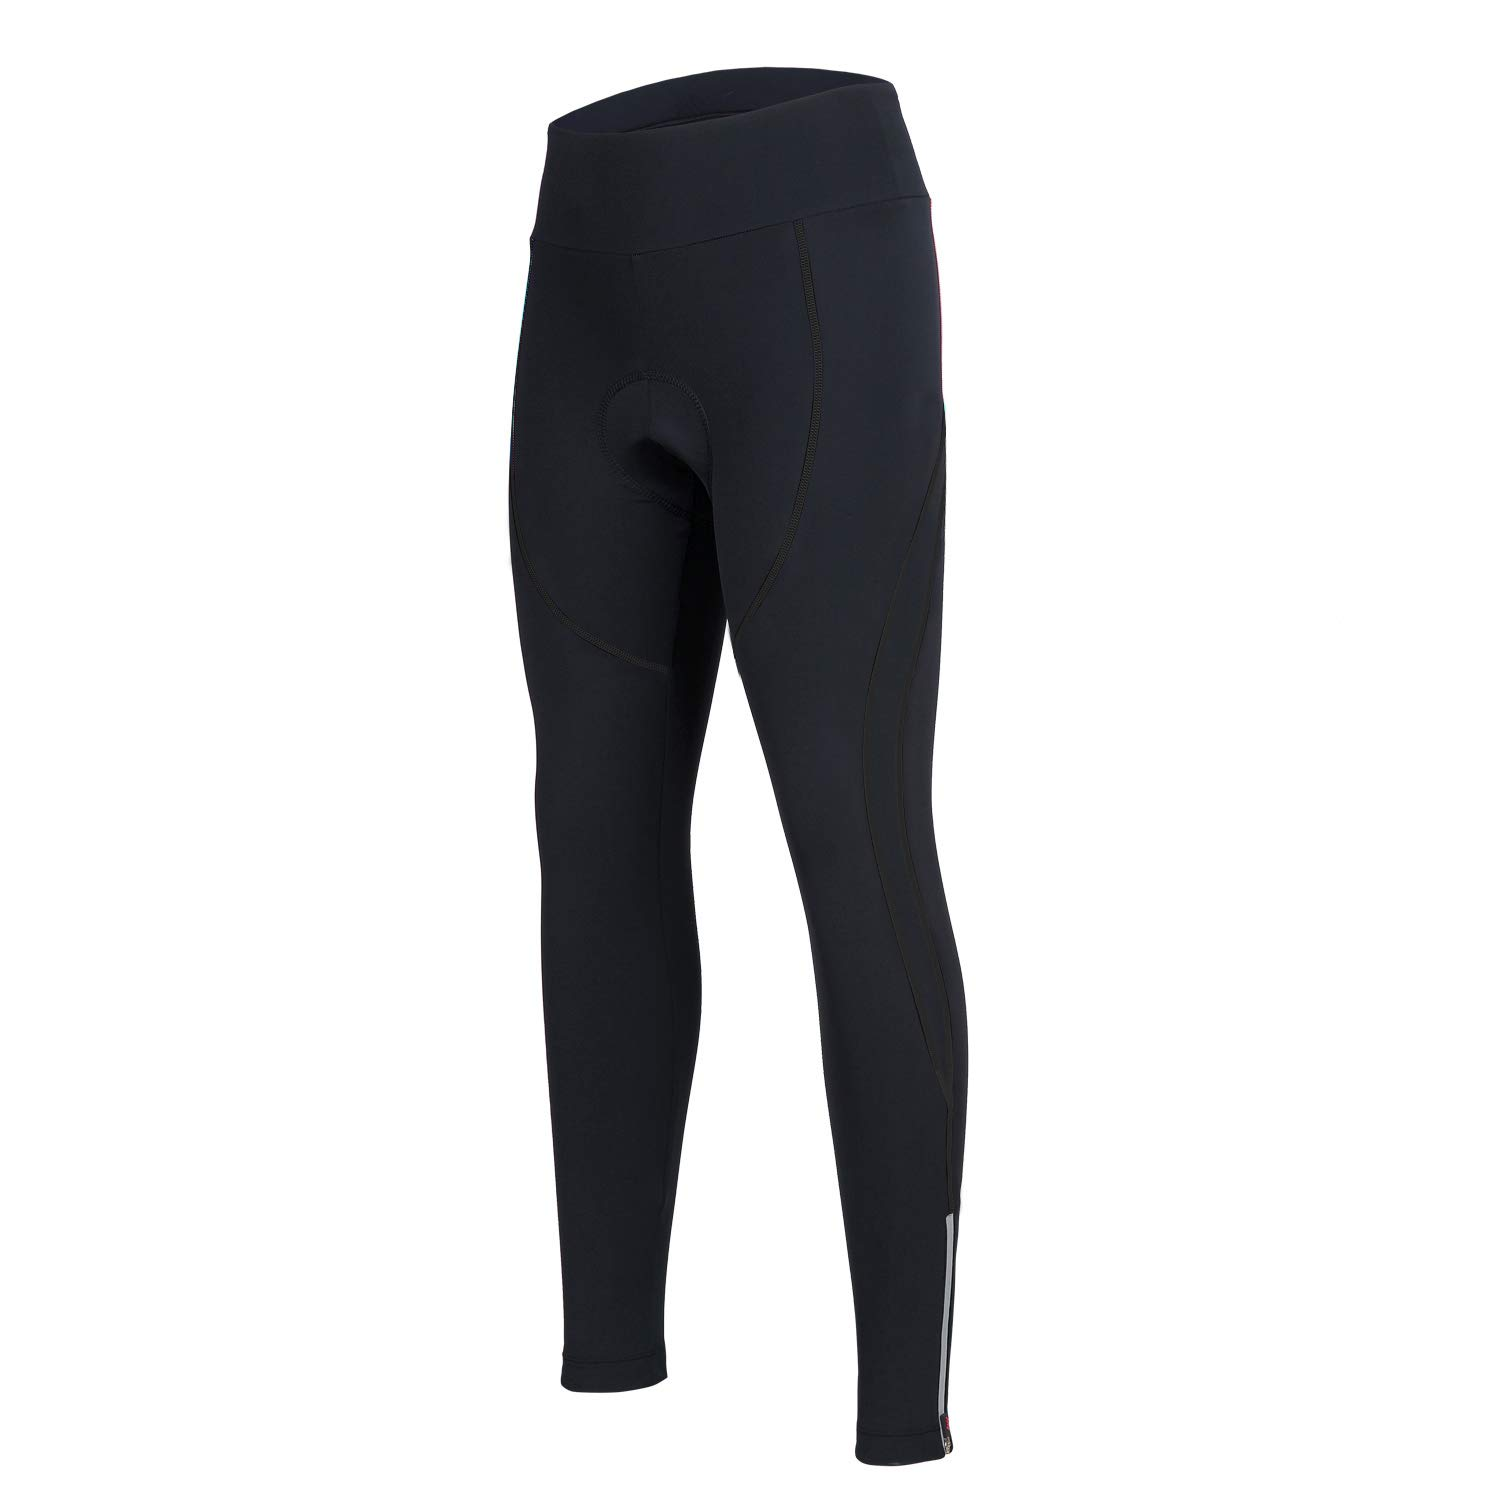 Women's Cycling Pants 3D Padded Compression Tight Long Bike Bicycle Pants with Wide Waistband (Black,XL) by SPOEAR